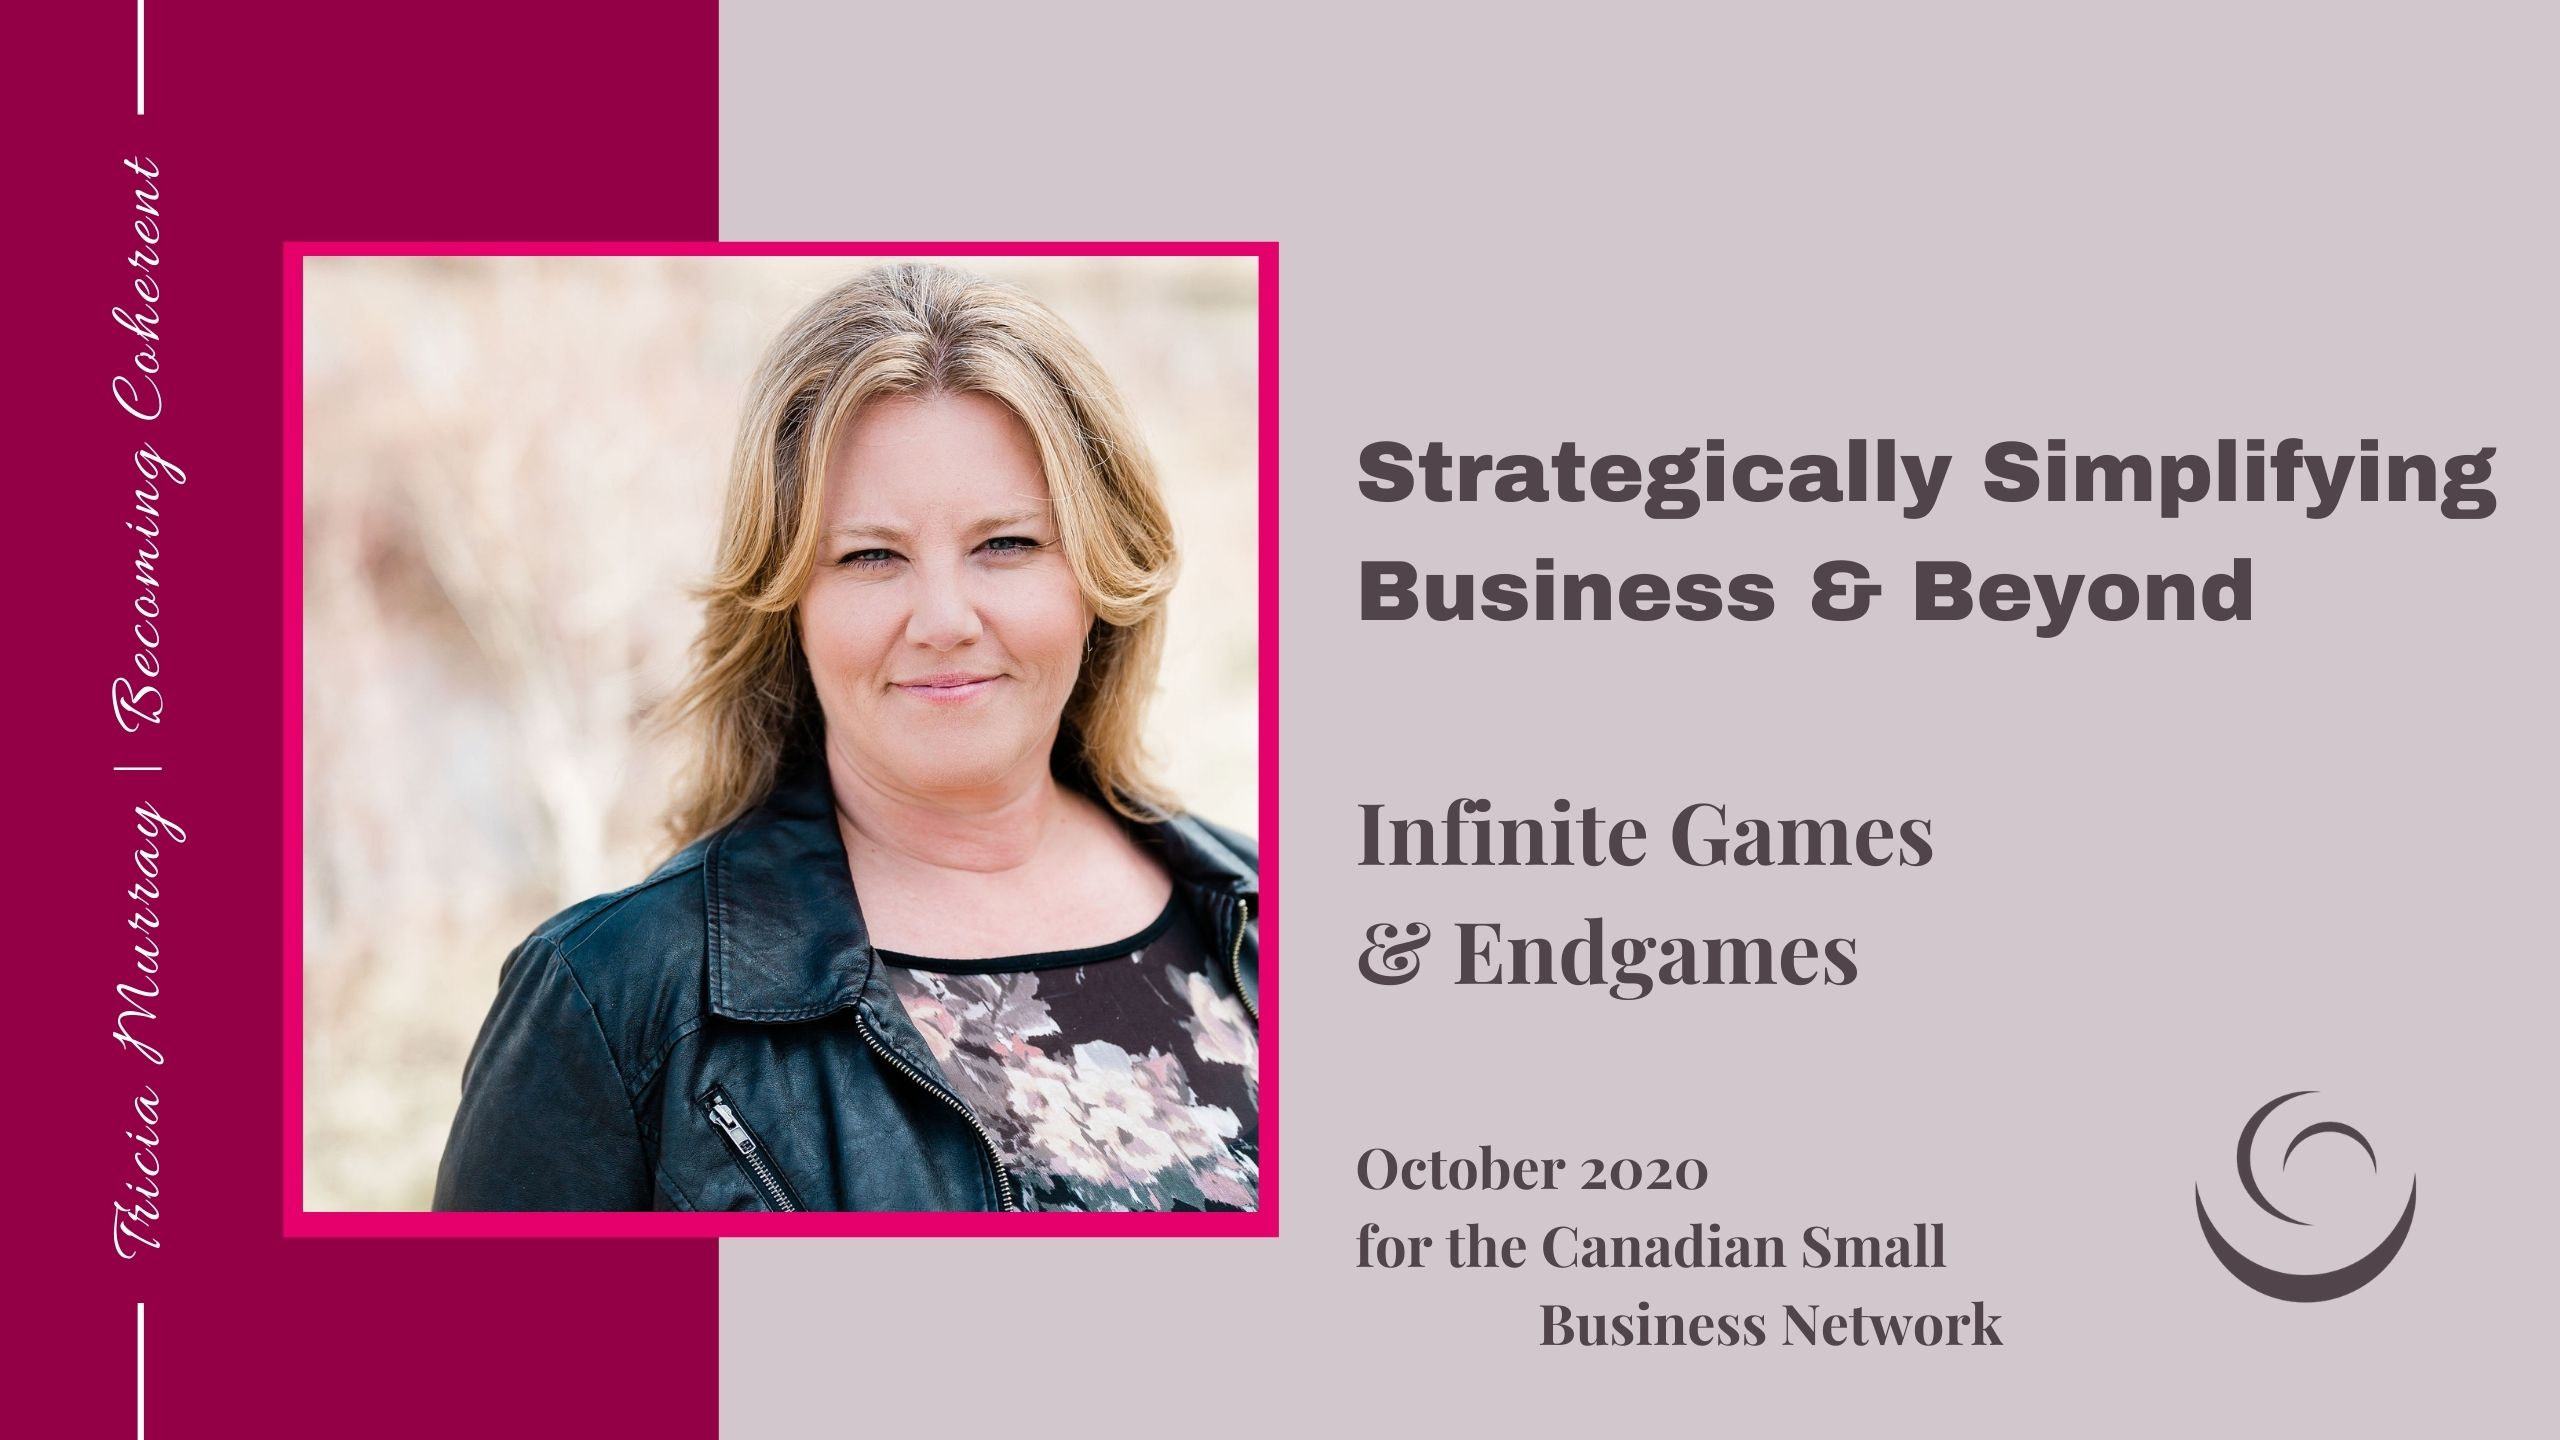 Canadian Small Business Women | Tricia Murray | October 2020 | Infinite Games